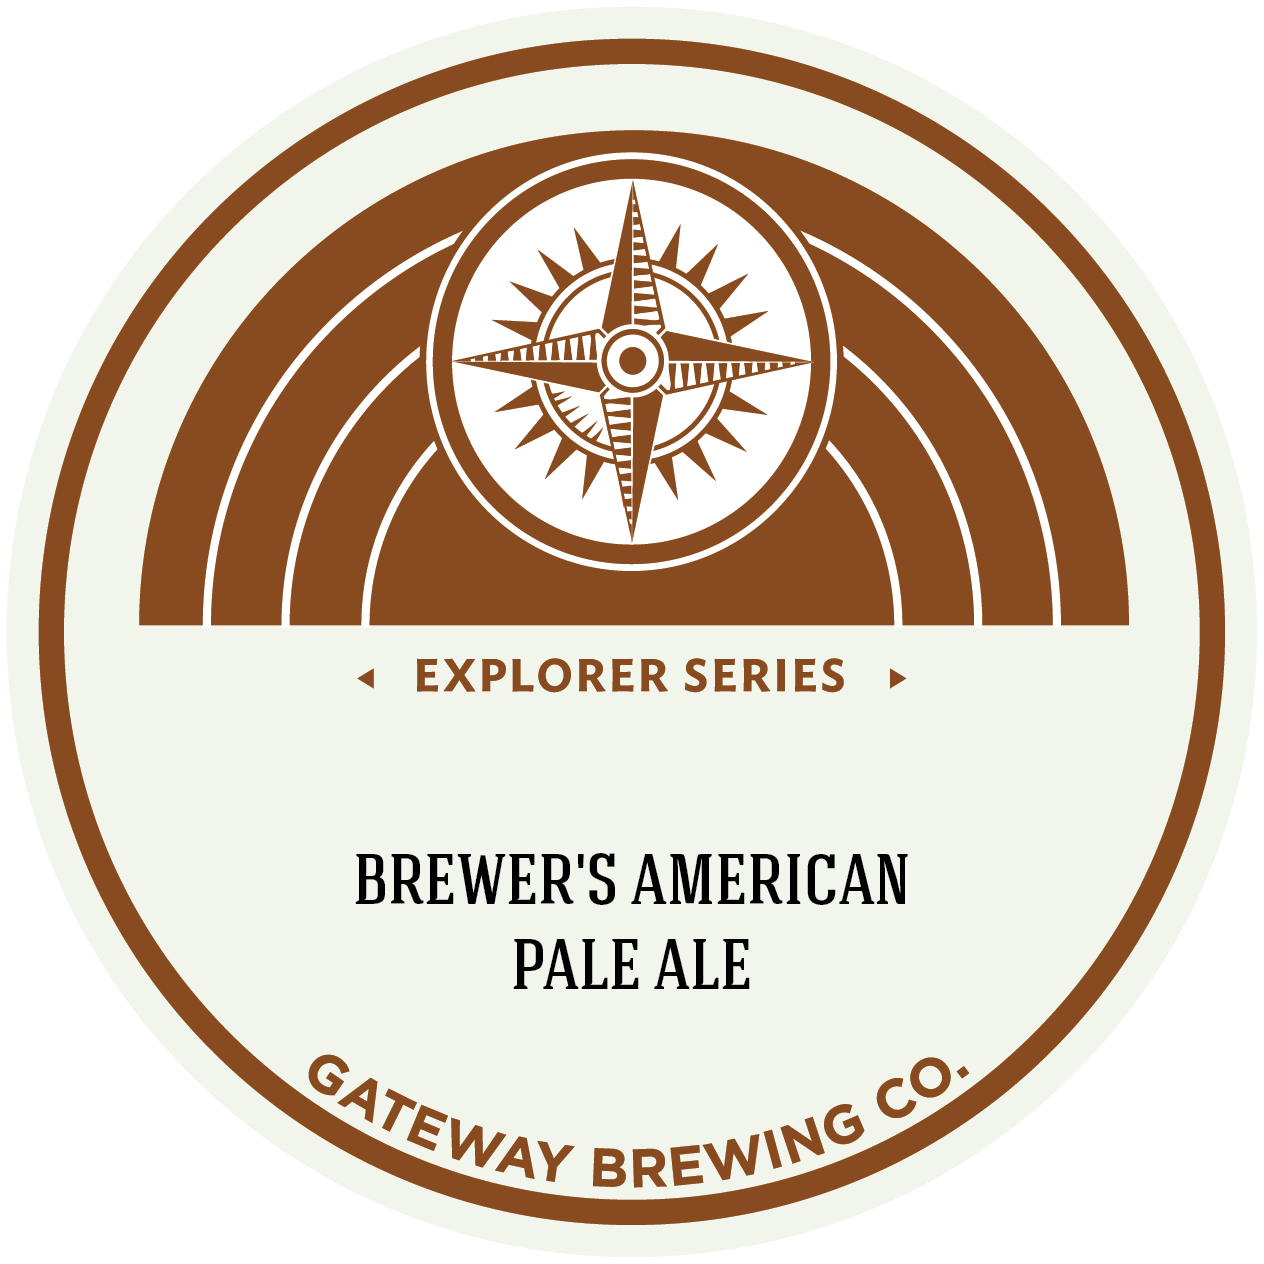 Brewer's American Pale Ale